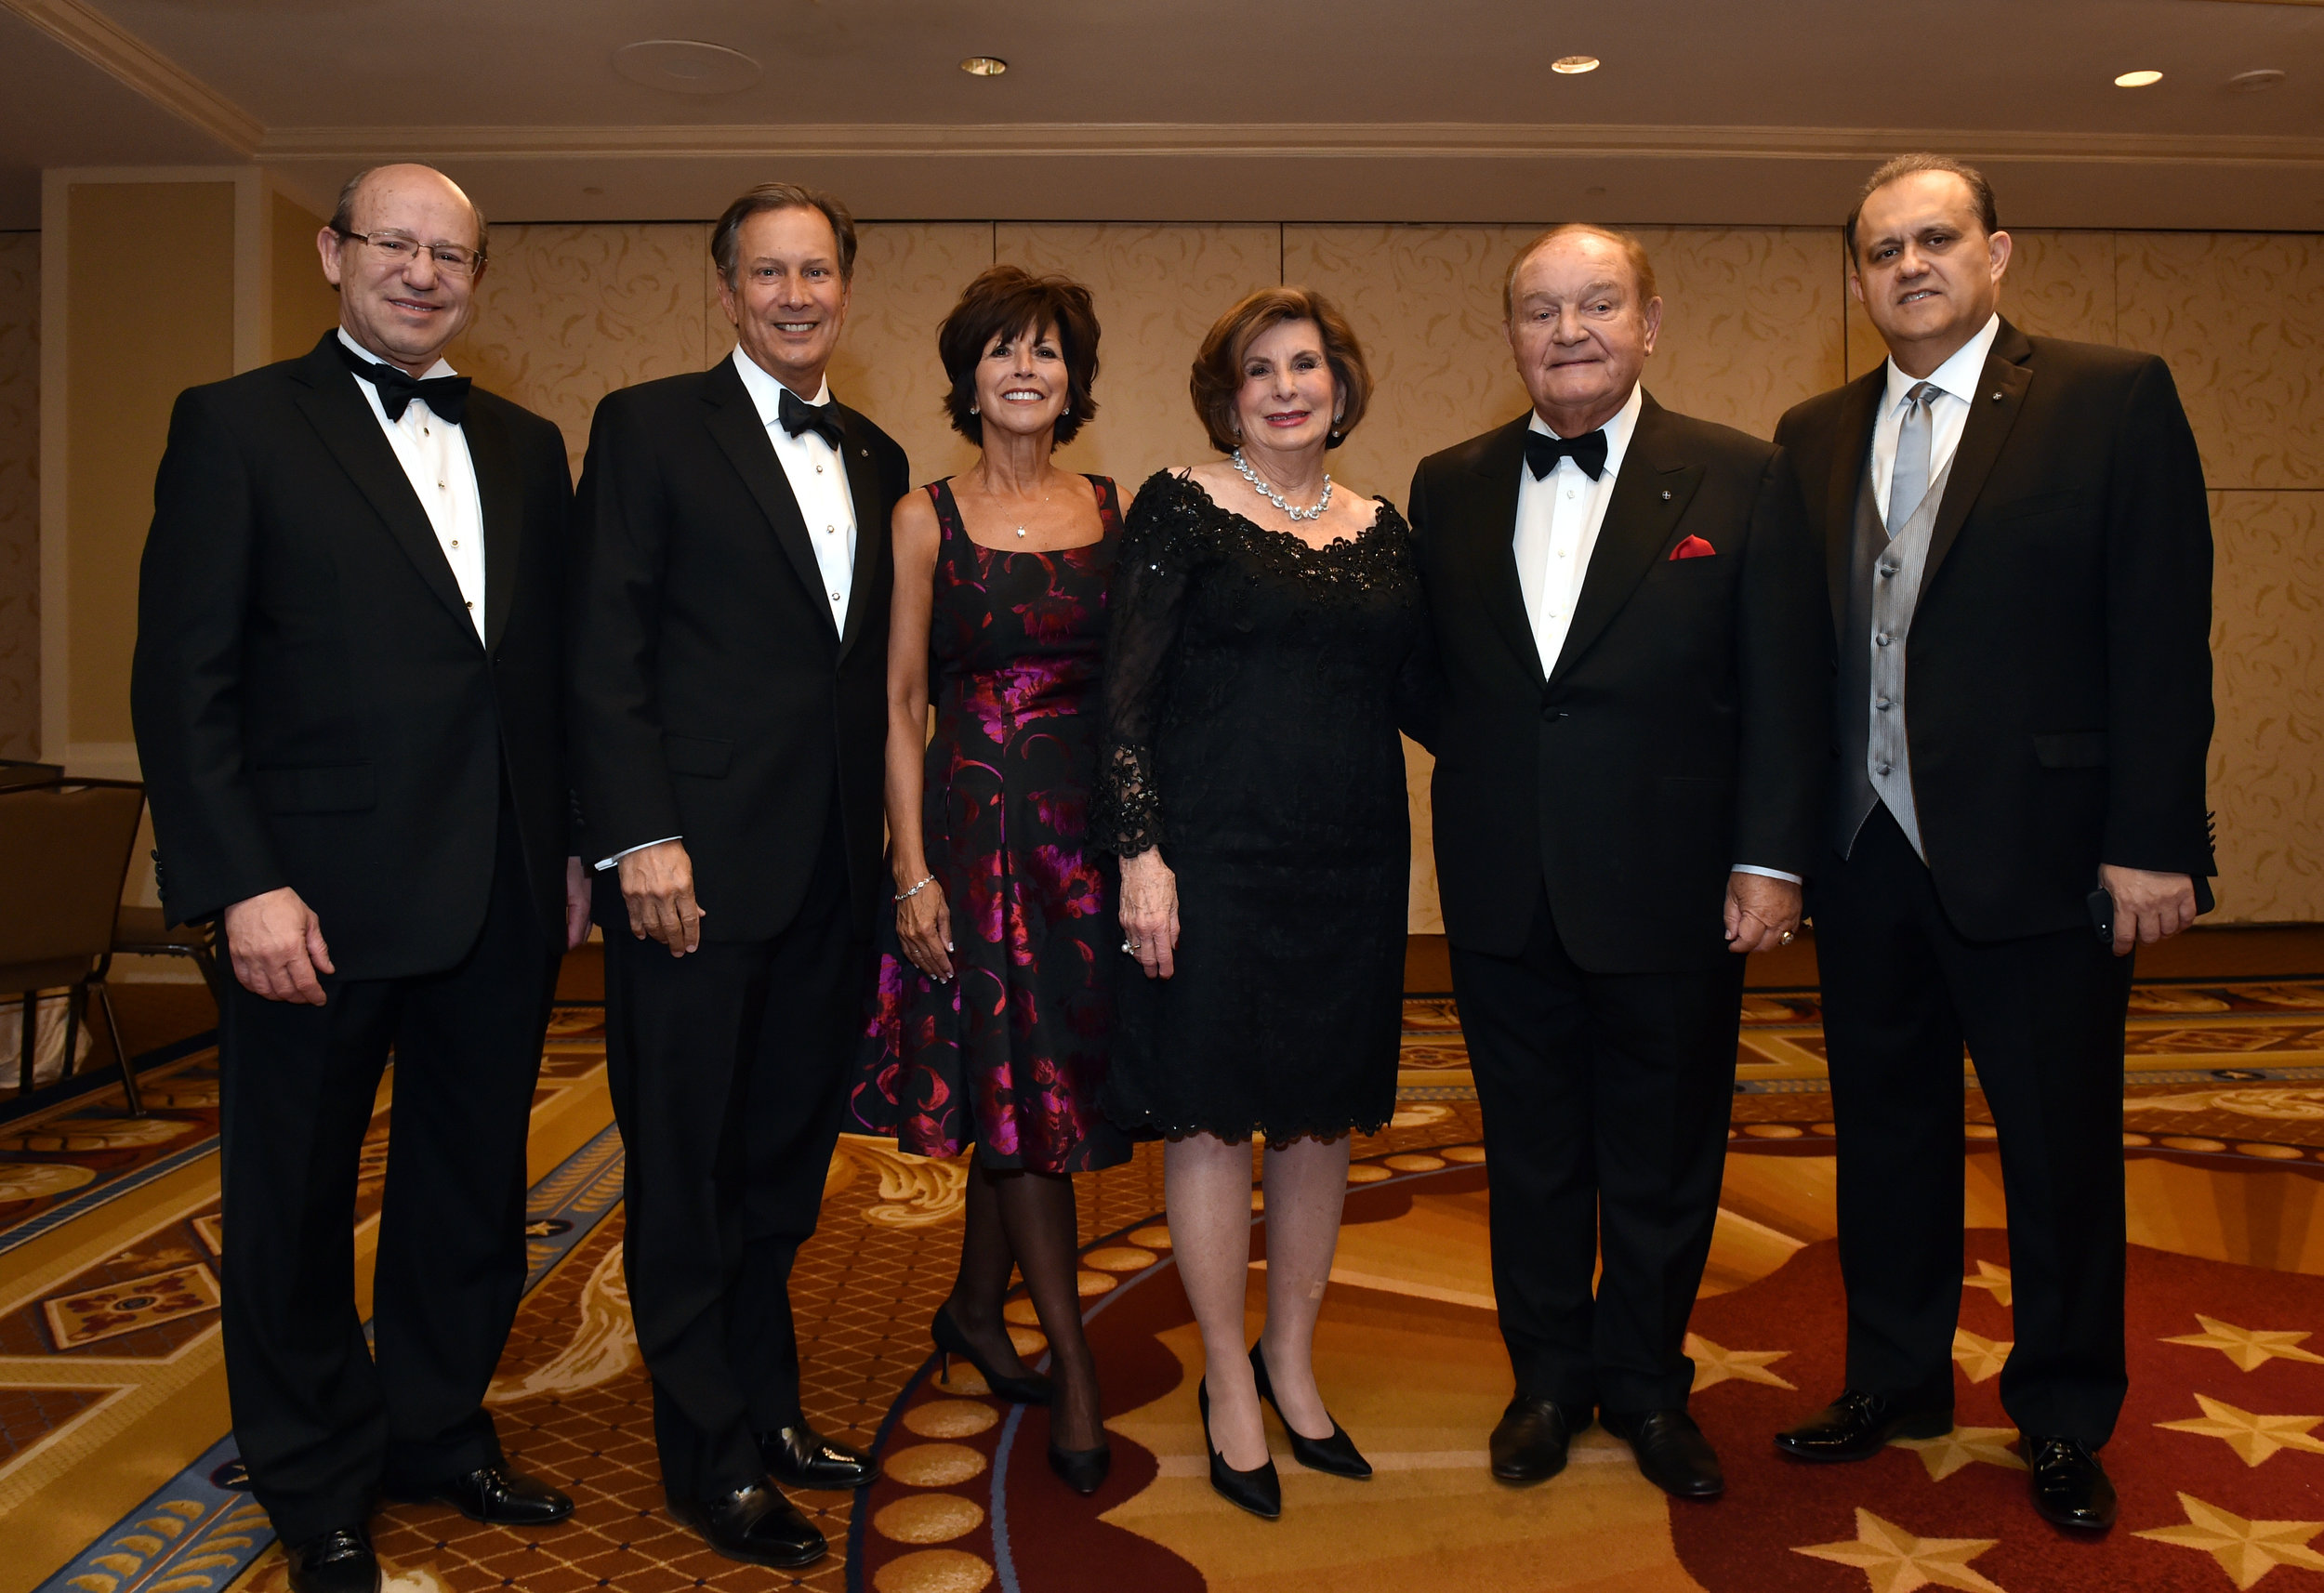 From left: Costas Galanis, Leon Andris, Robyn Andris, Penny Korkos, Dr. George Korkos, Nick Larigakis